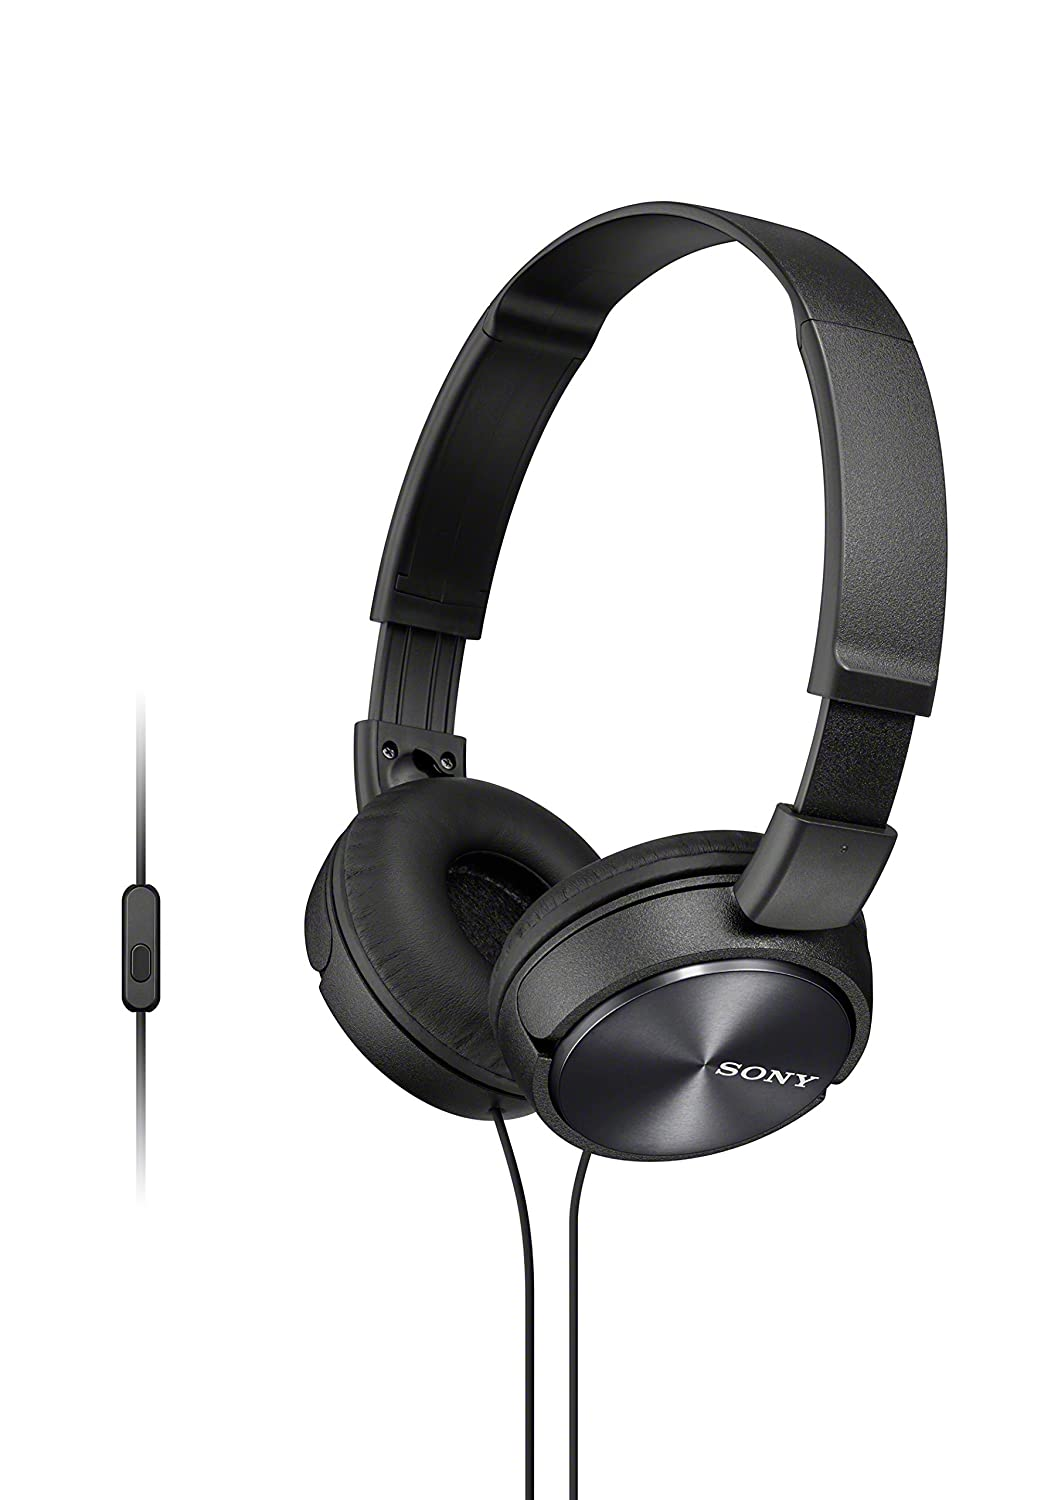 Sony Foldable Headphones with Smartphone Mic and Control - Metallic Black